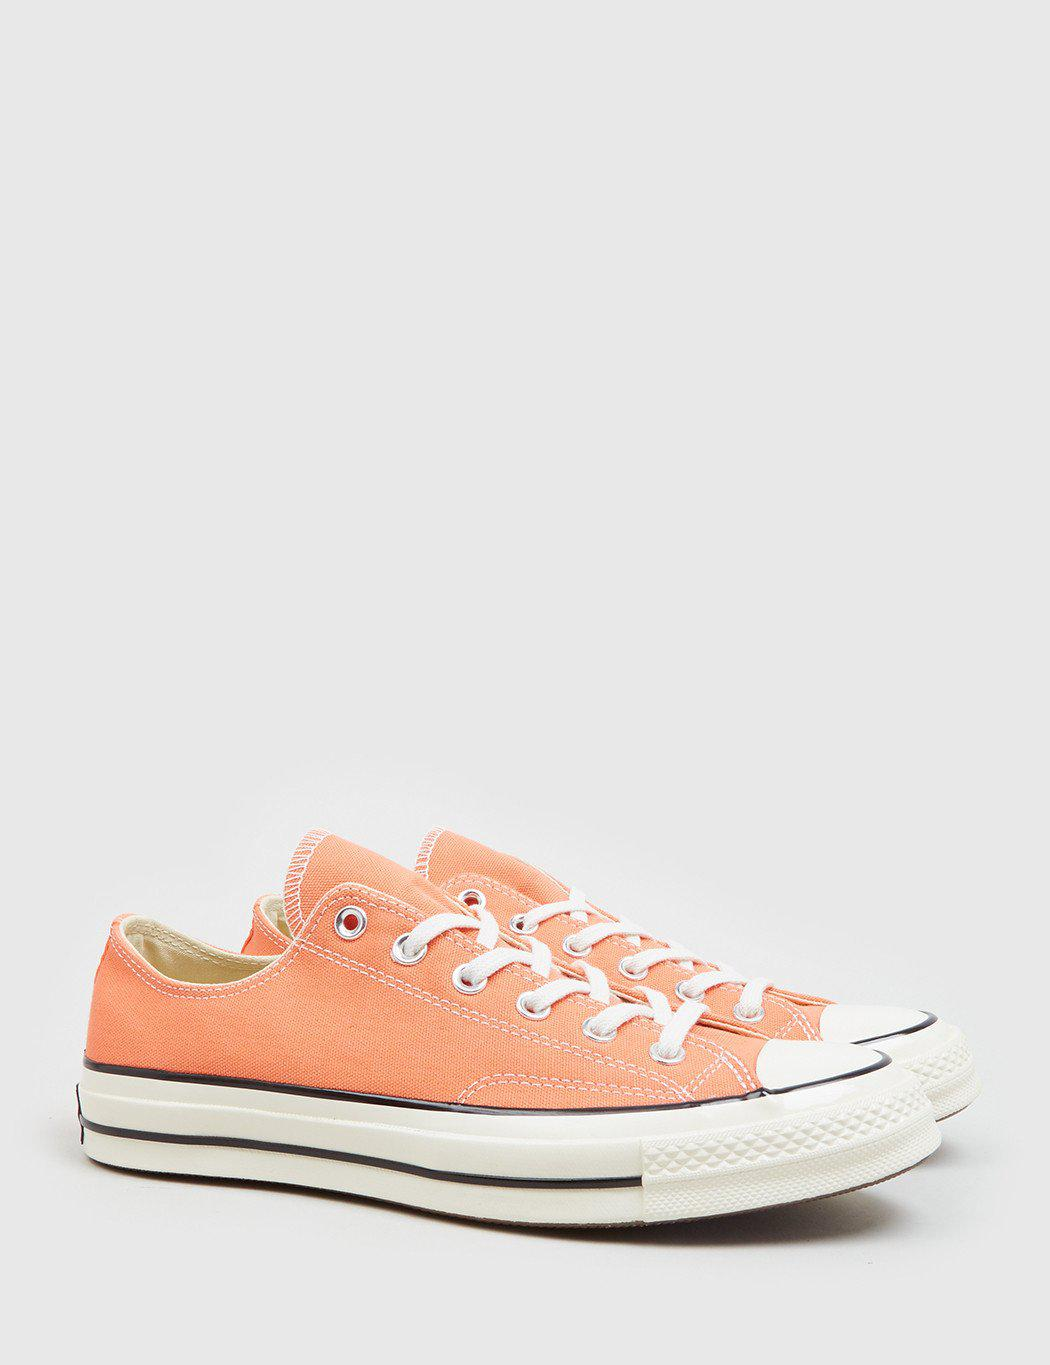 36ce35b31399 Converse 70 s Chuck Taylor Low (canvas) for Men - Lyst